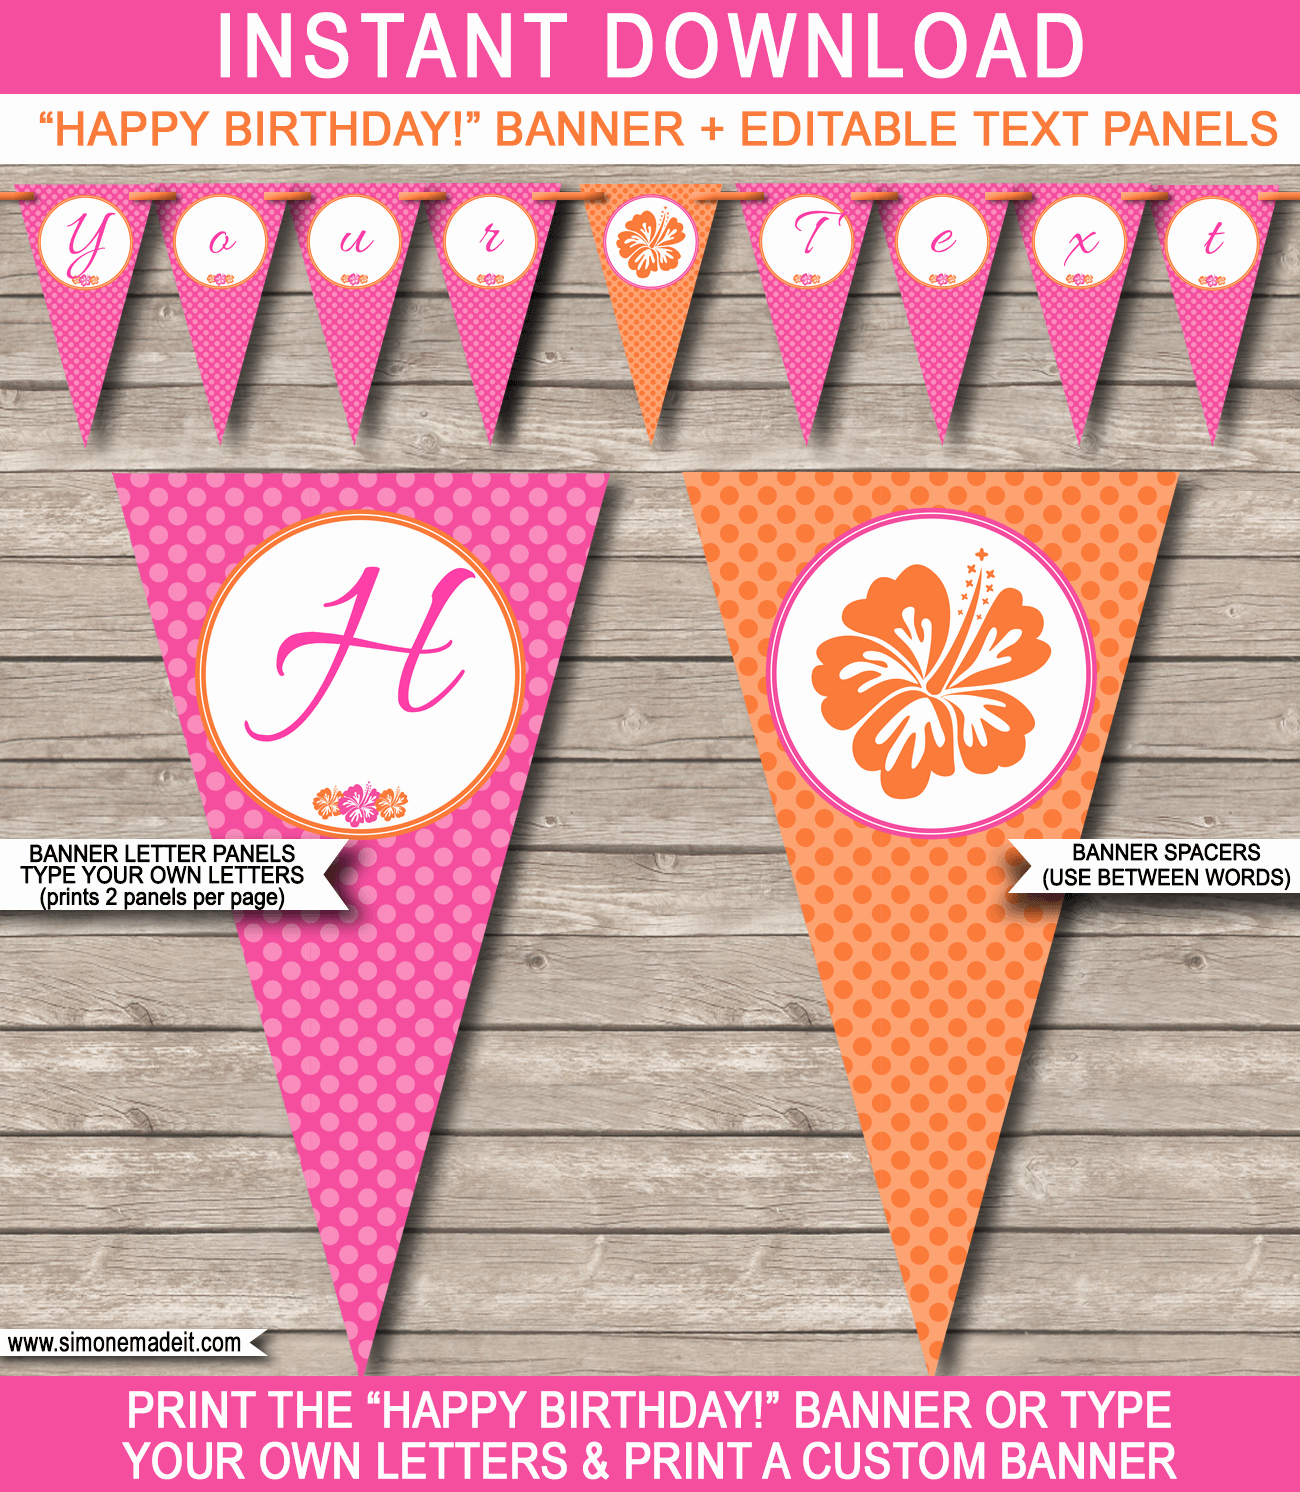 Happy Birthday Banner Template Awesome Hawaiian Luau Party Banner Template